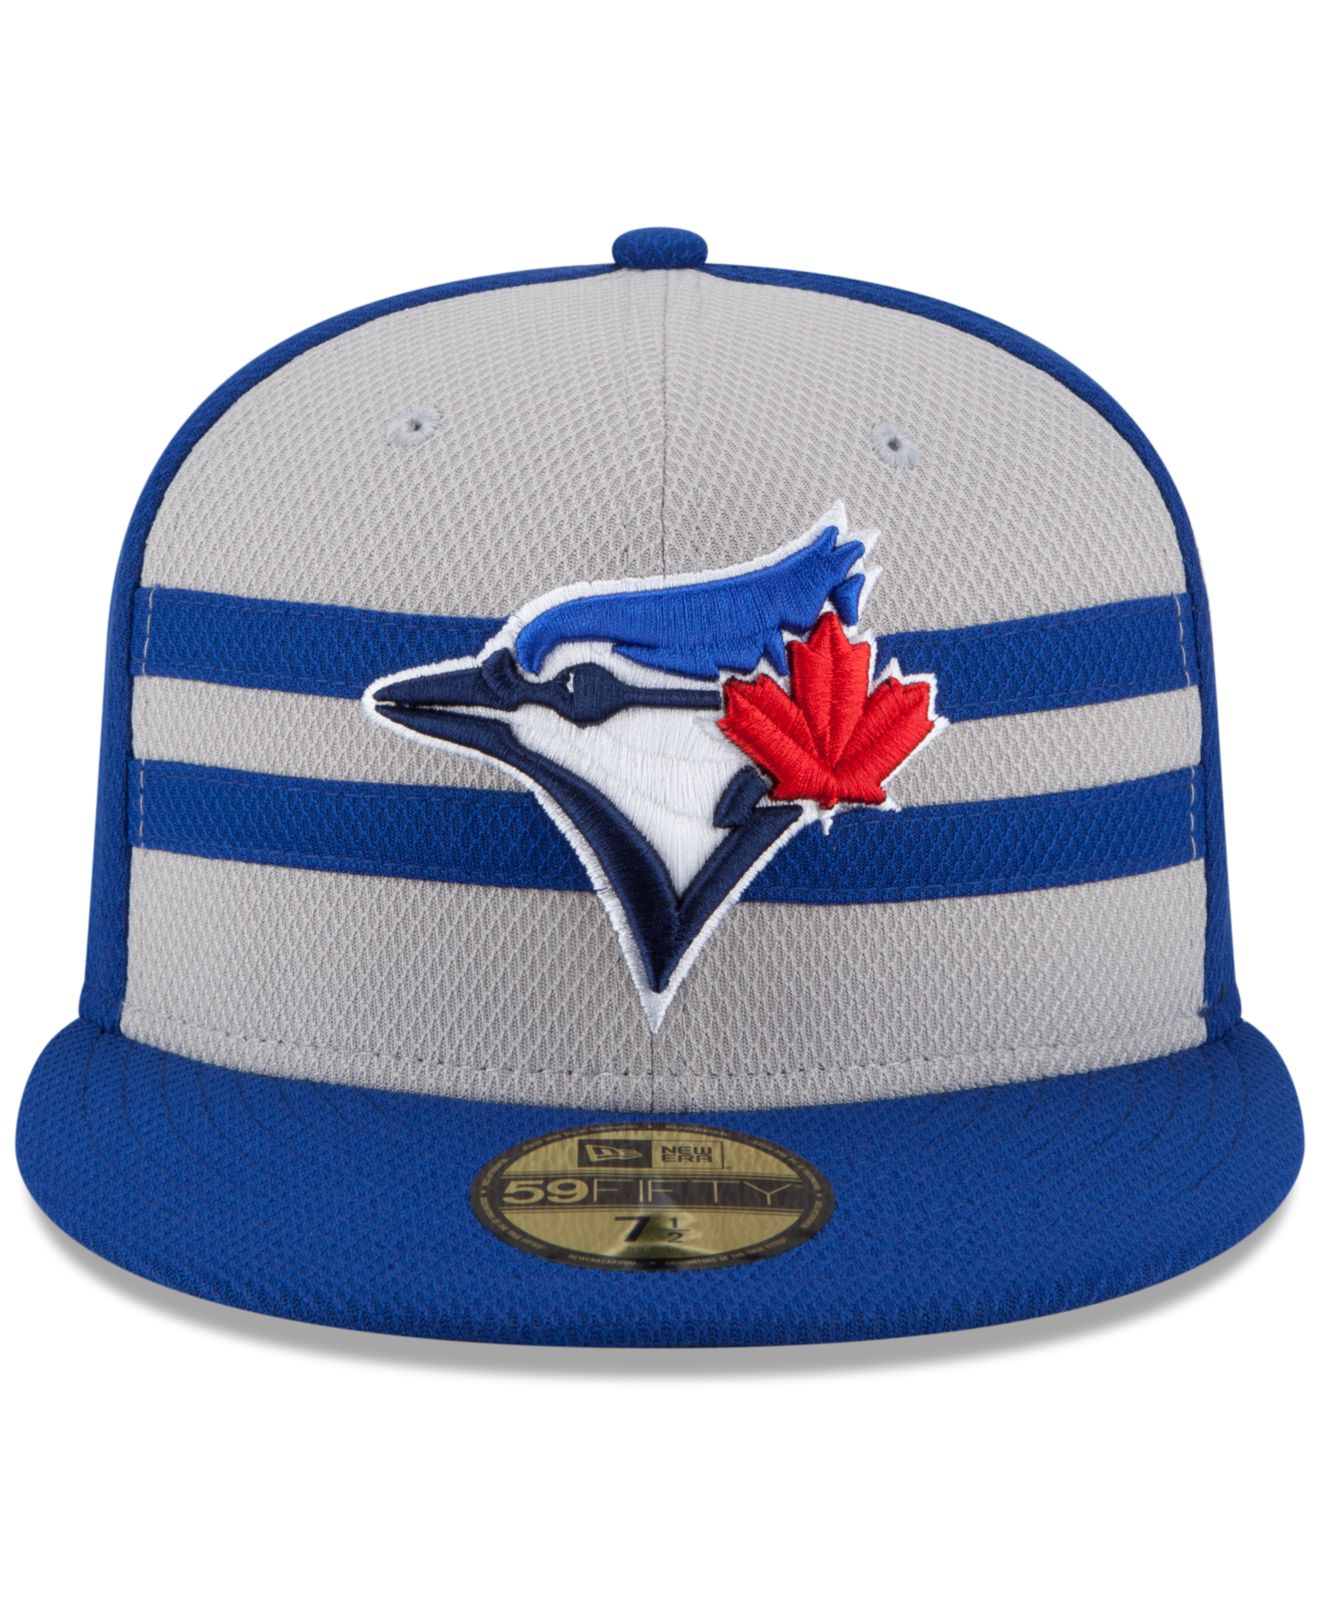 finest selection c0ba8 c44bb denmark lyst ktz toronto blue jays 2015 all star game 59fifty cap in blue  3fa8e 1f6be